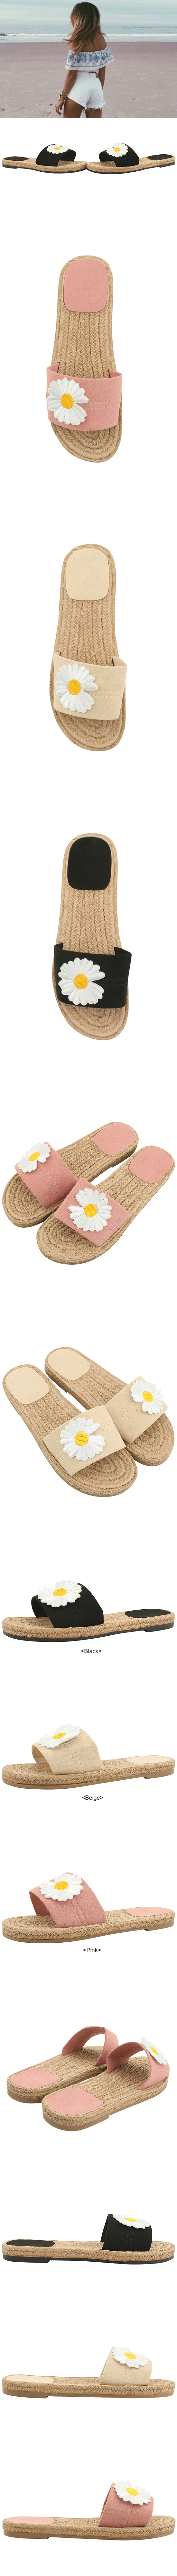 Dandelion Flower Embroidery Soft Slippers Pink